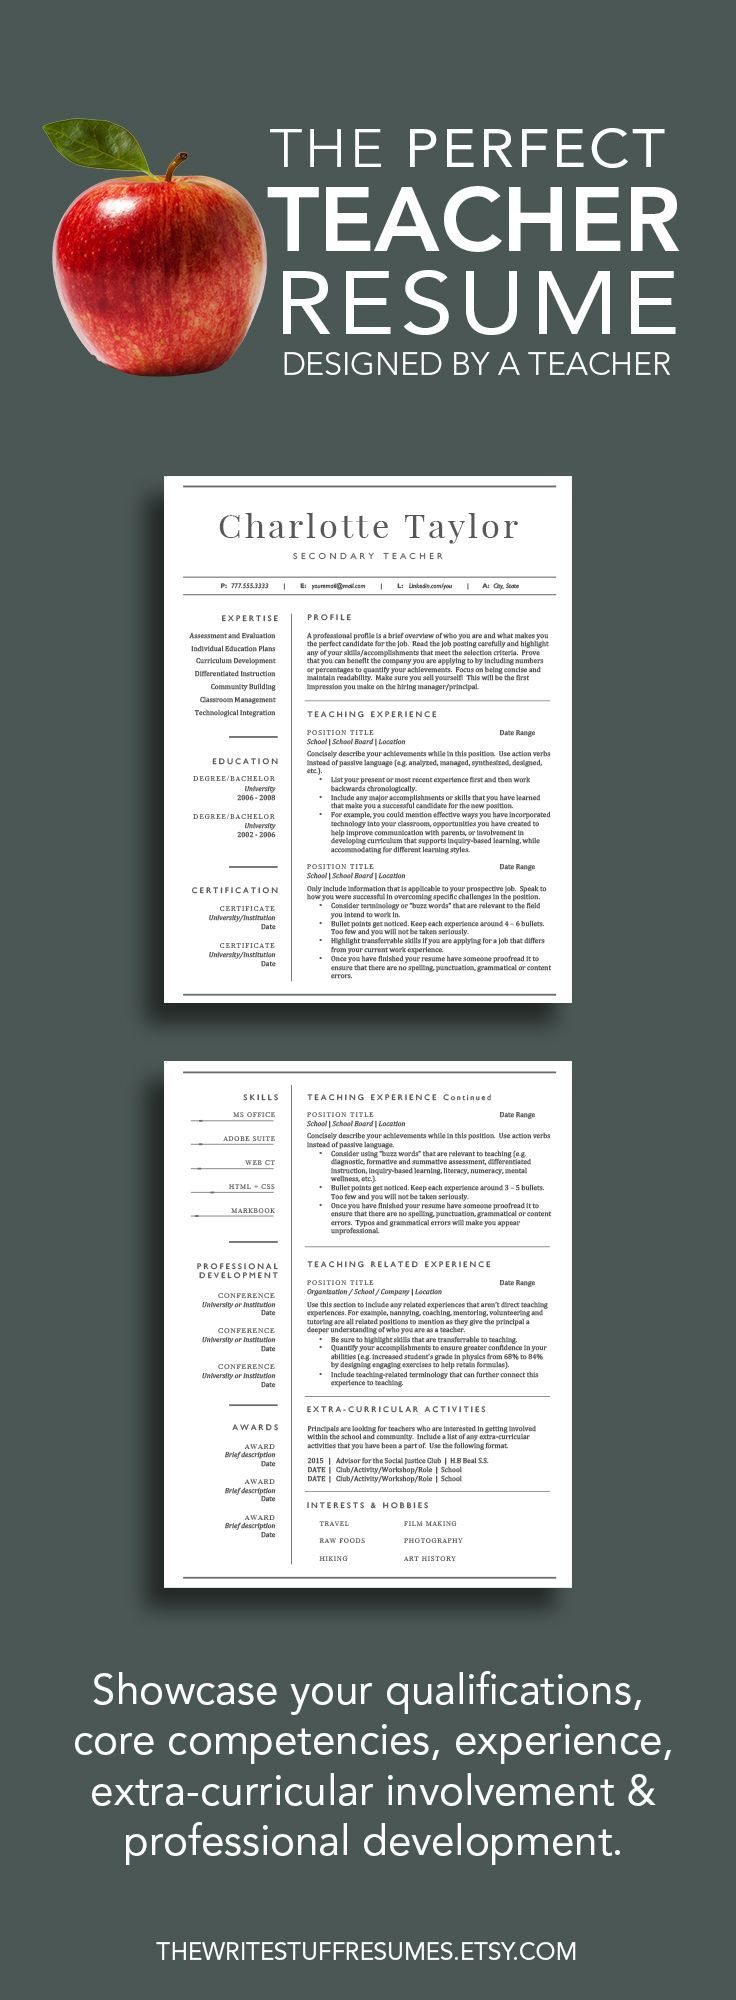 2 Page Teacher Resume Template for Word (includes cover